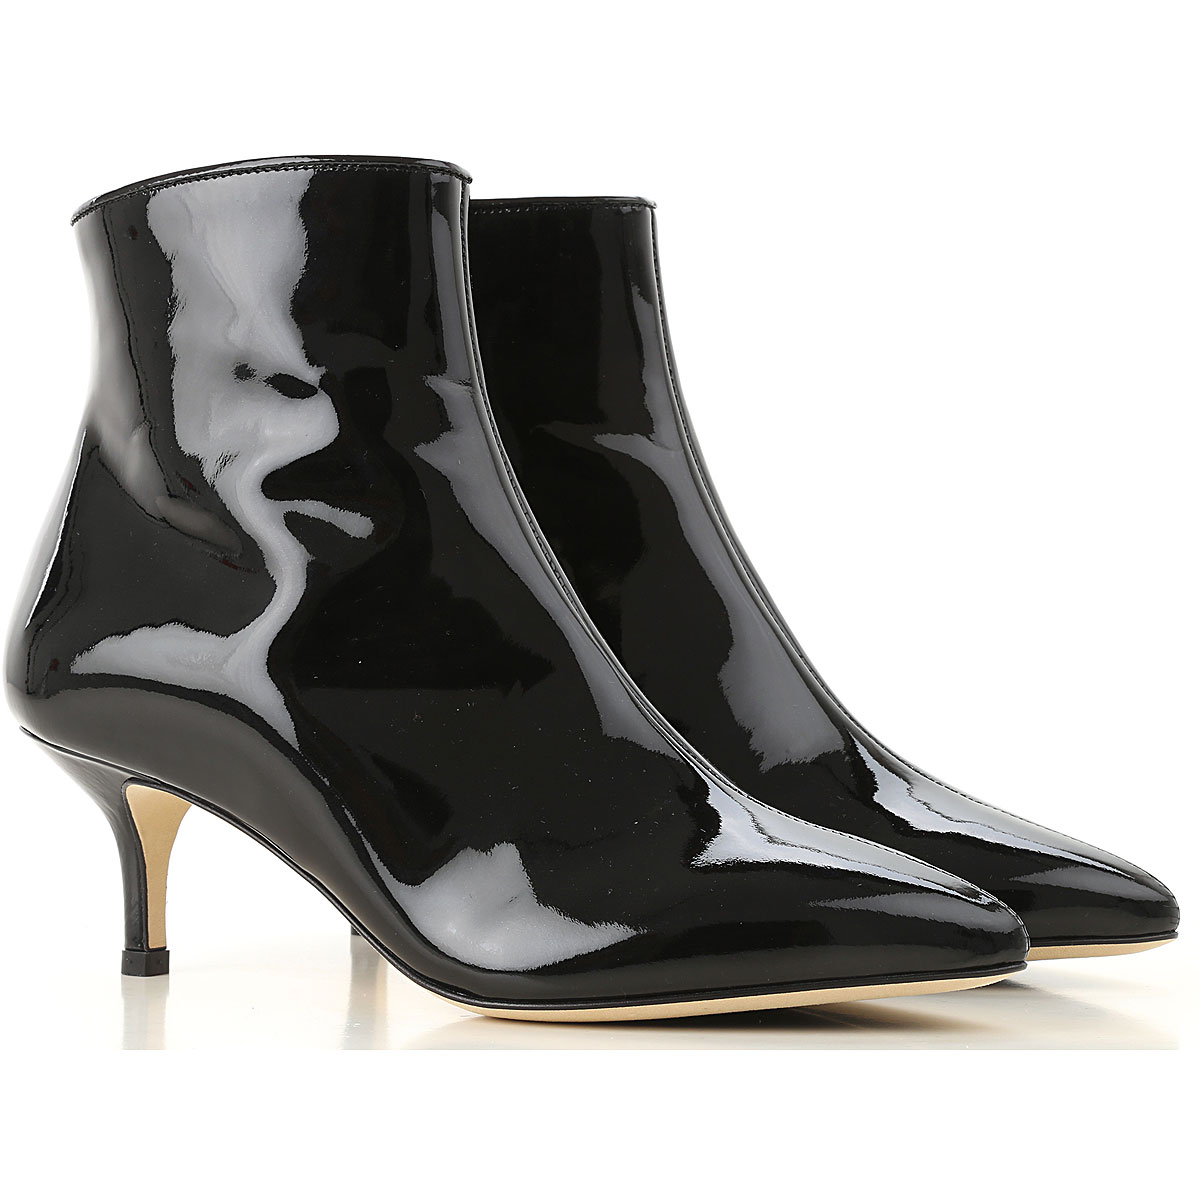 Image of Polly Plume Boots for Women, Booties, Black, Patent, 2017, 10 6 7 8